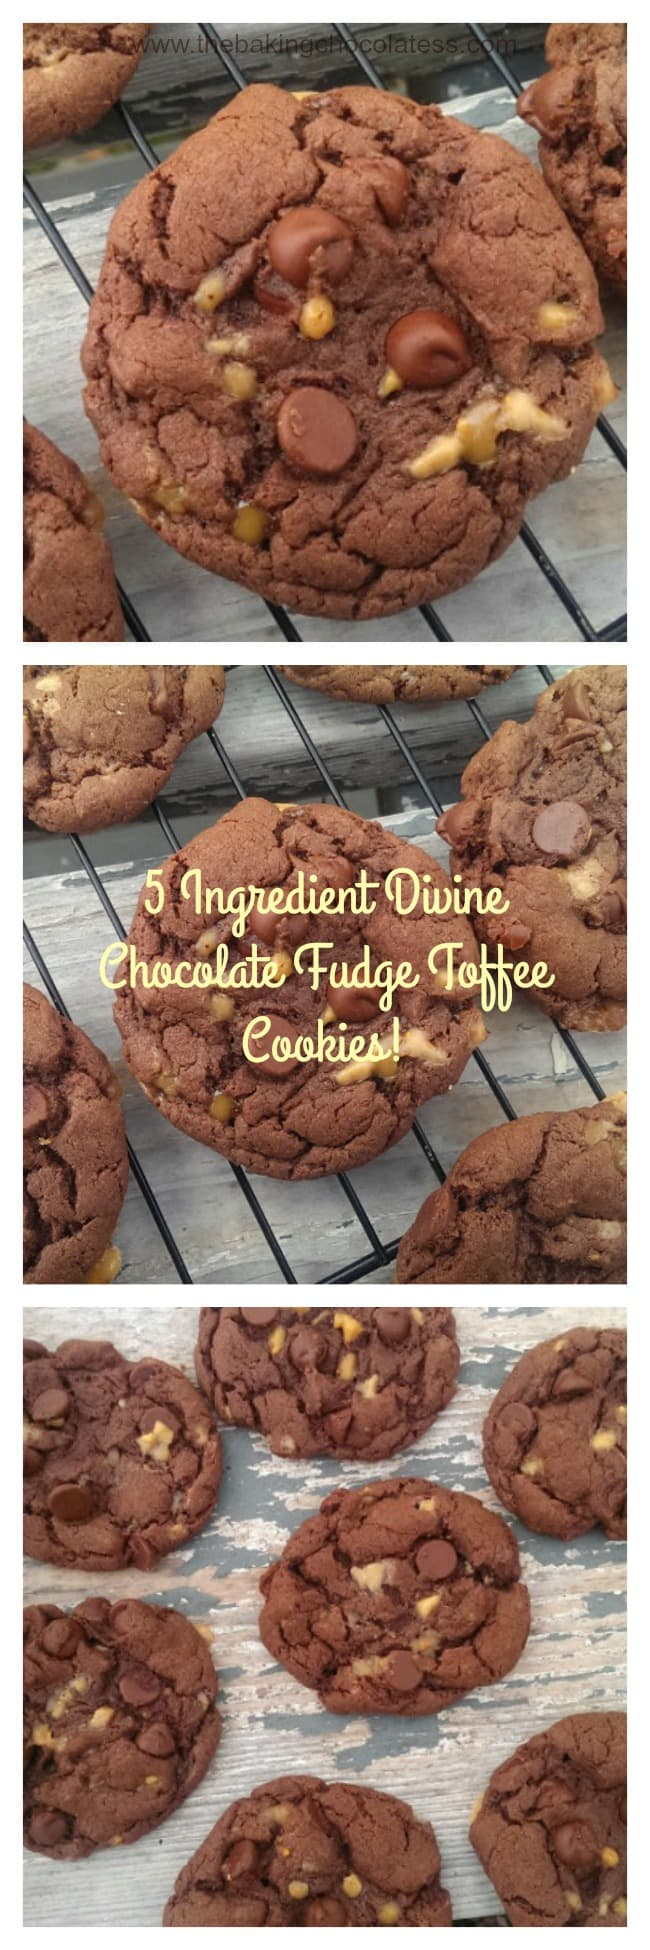 5 Ingredient Divine Chocolate Fudge Toffee Cookies!